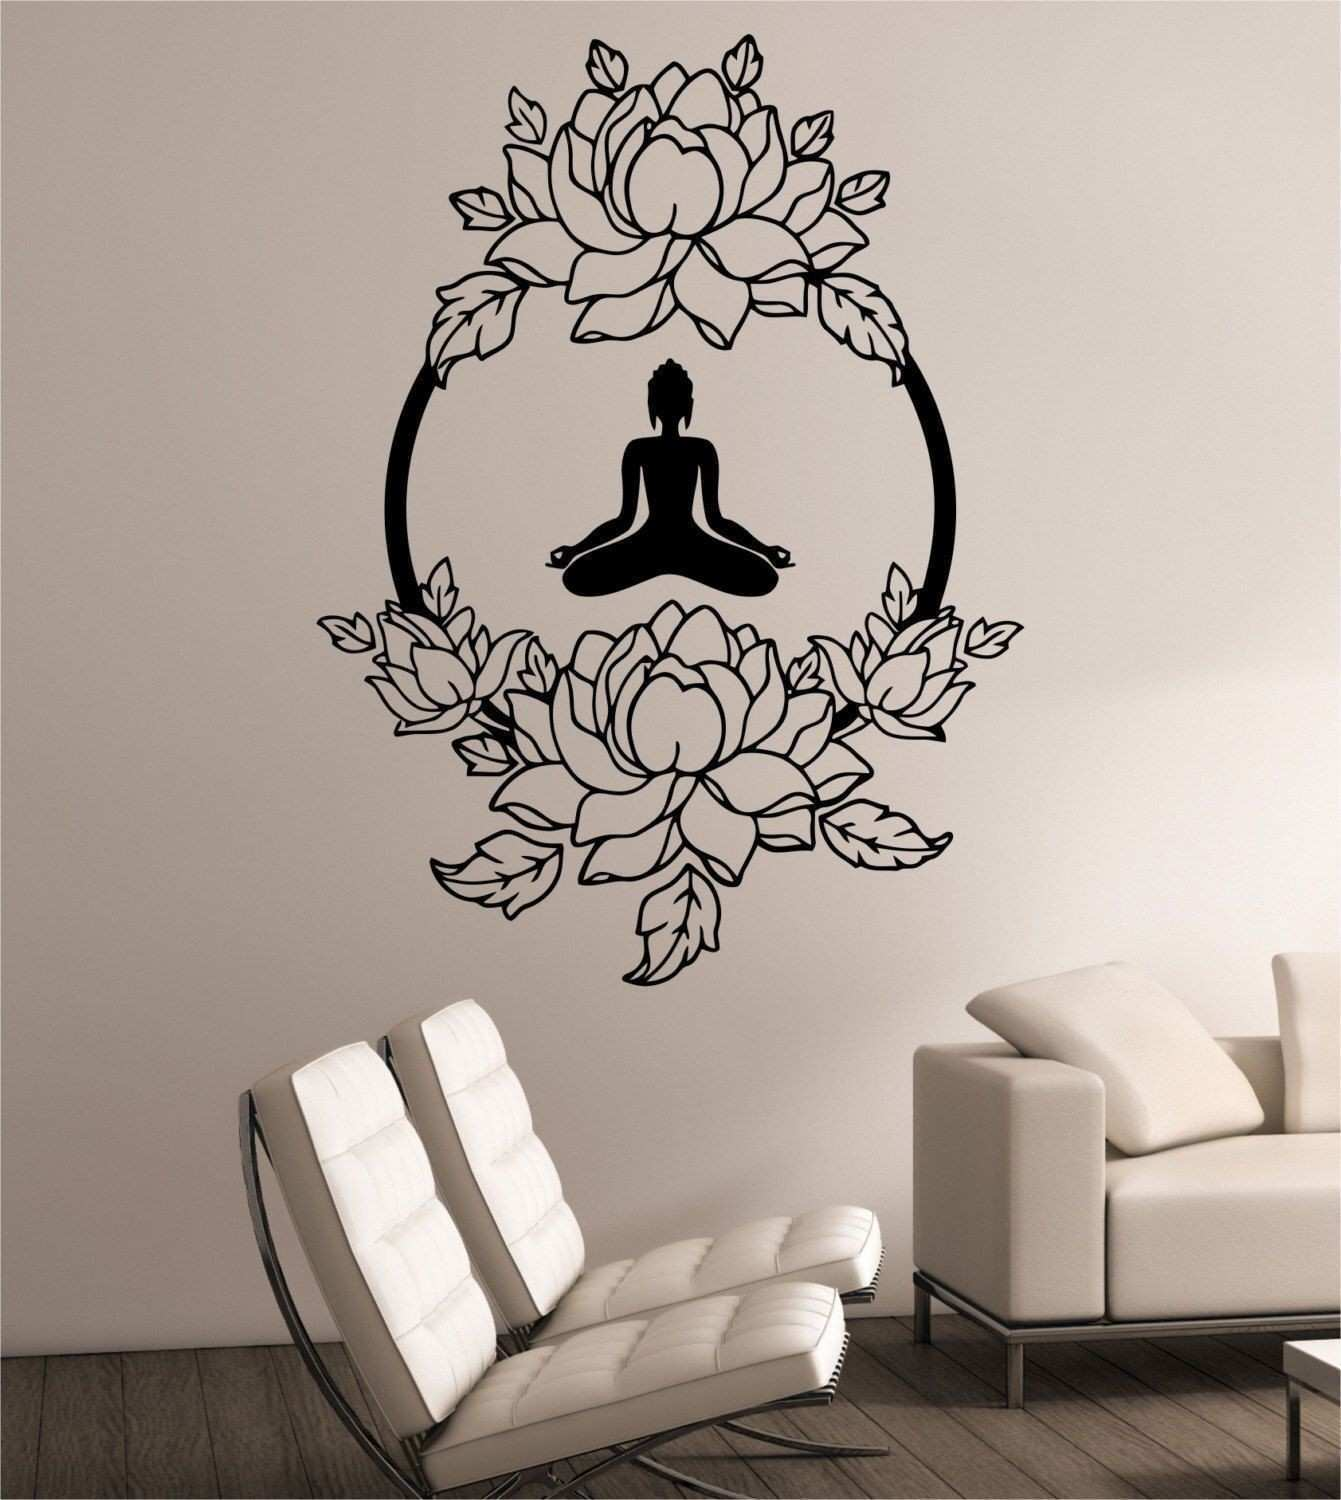 Yoga at Home Lovely 41 Luxury Vinyl Wall Art Decals Design Ideas